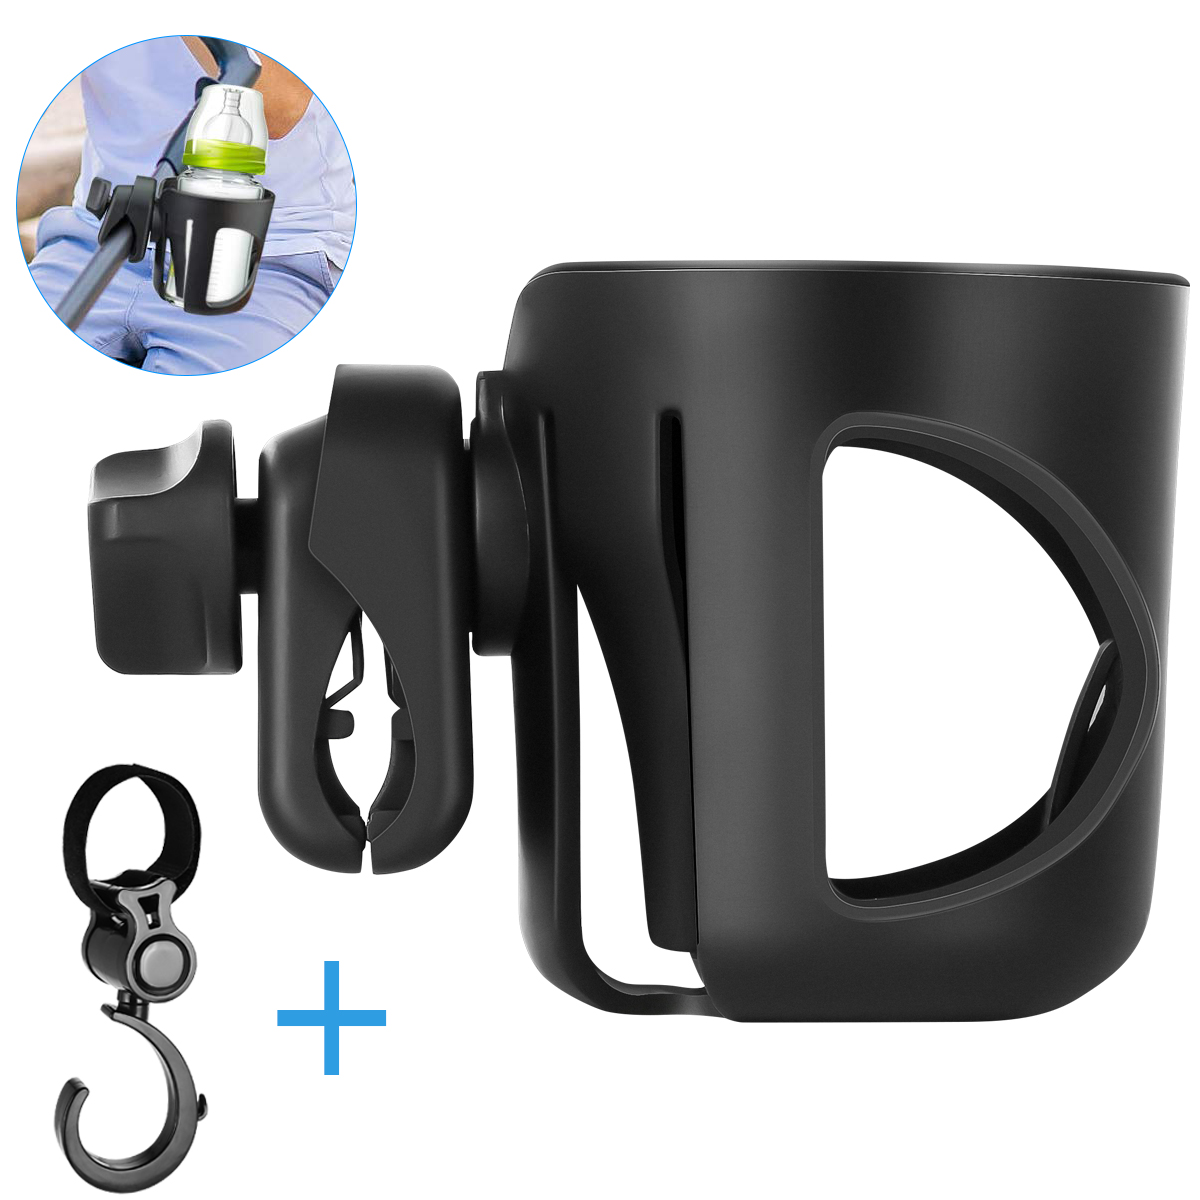 Stroller Pram Cup Holder Universal Coffee Cup Holder Baby ...